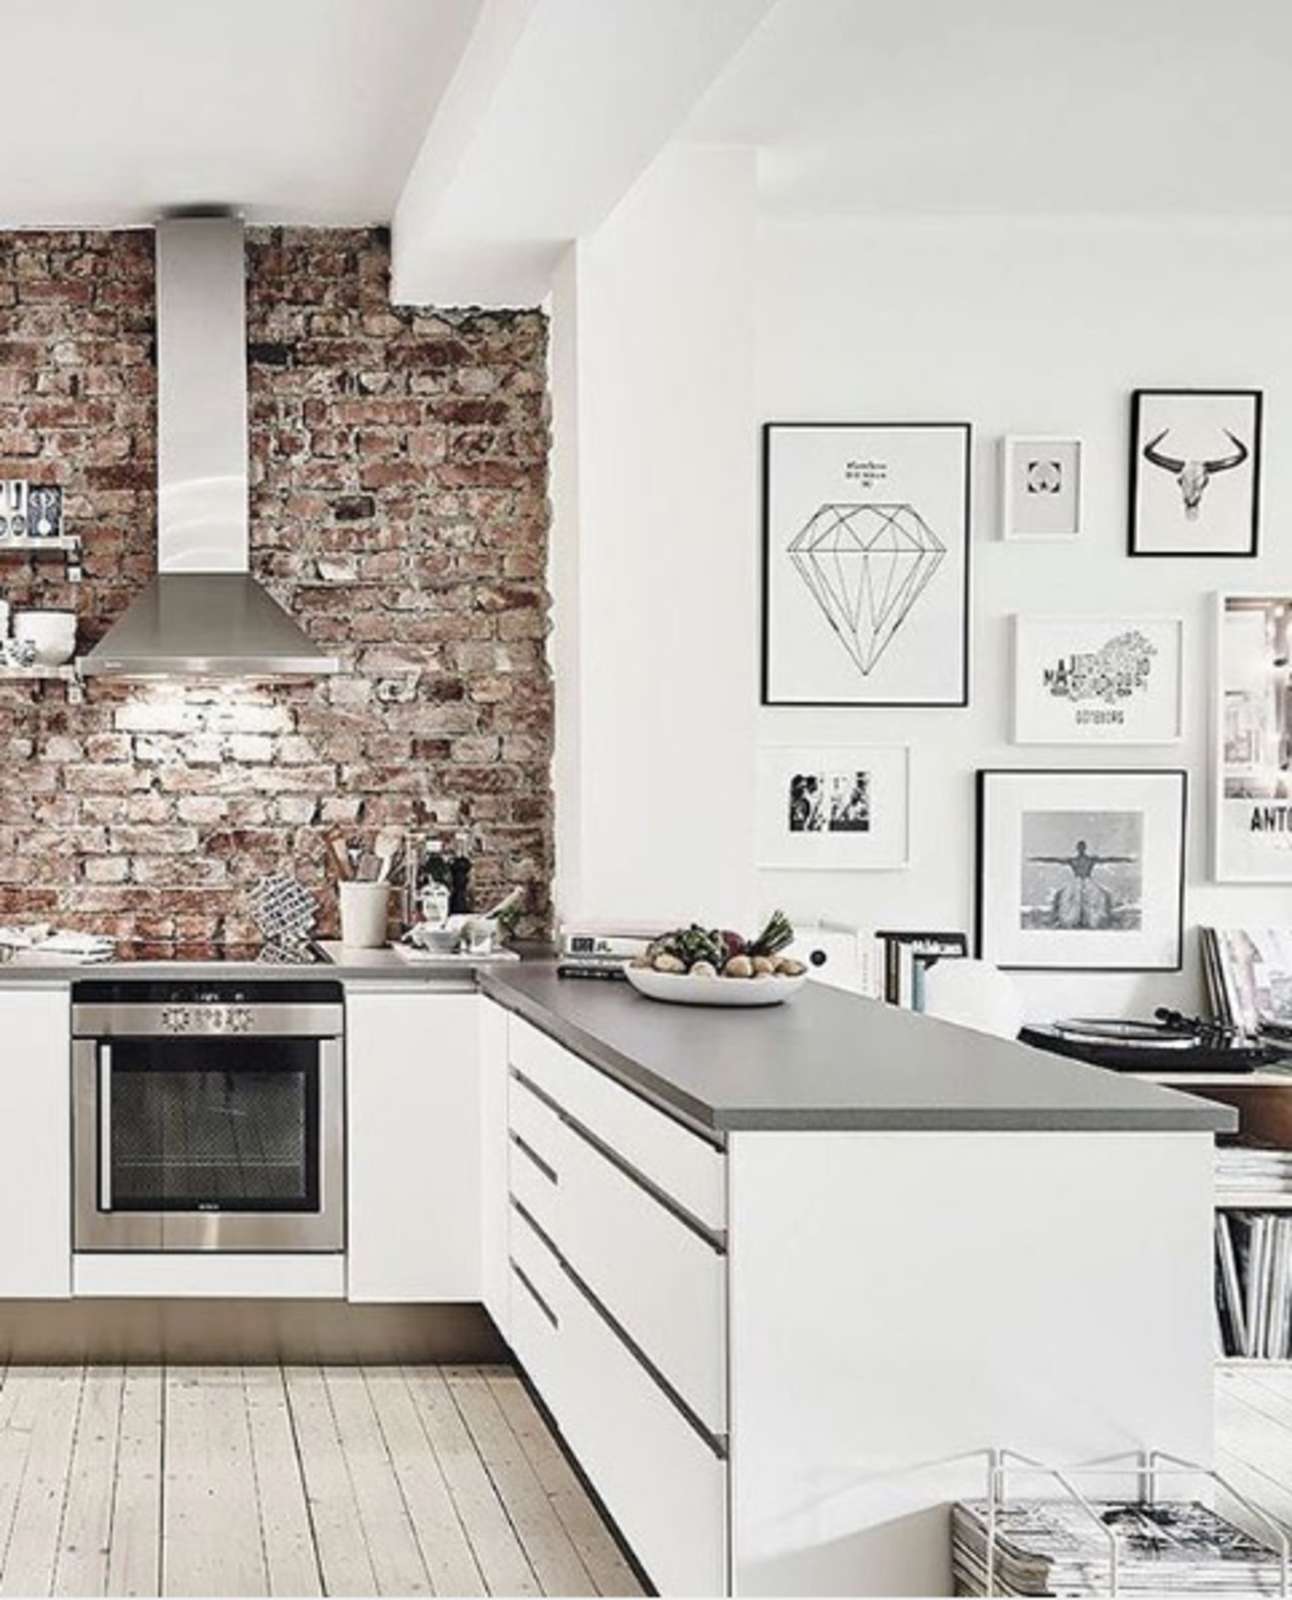 With an exposed brick wall and mesmerizing graphic art, this kitchen, posted by @abigailclaireinspo, feels particularly on-trend. exposed brick by Kate Reggev